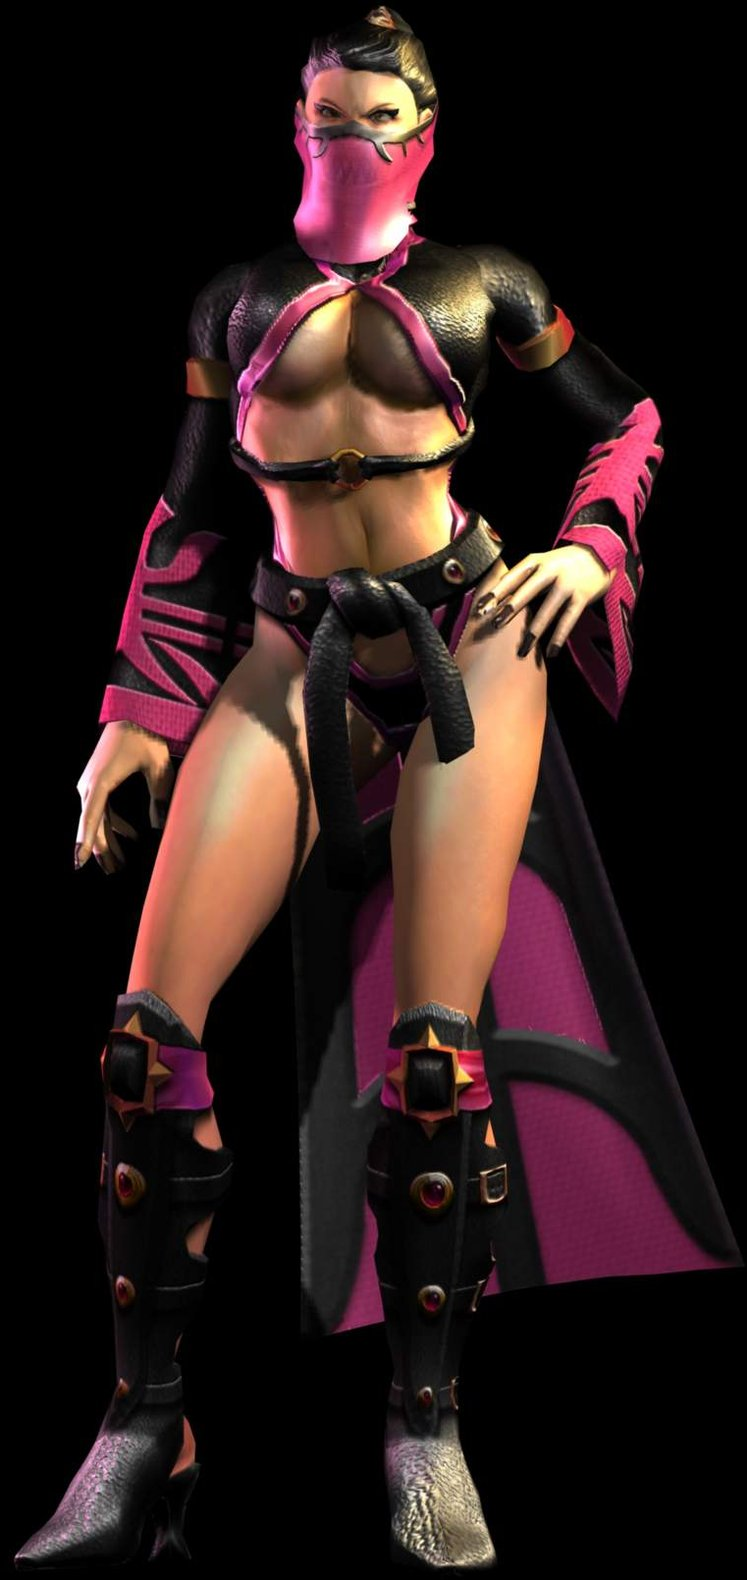 Mileena nua mortal exposed streaming